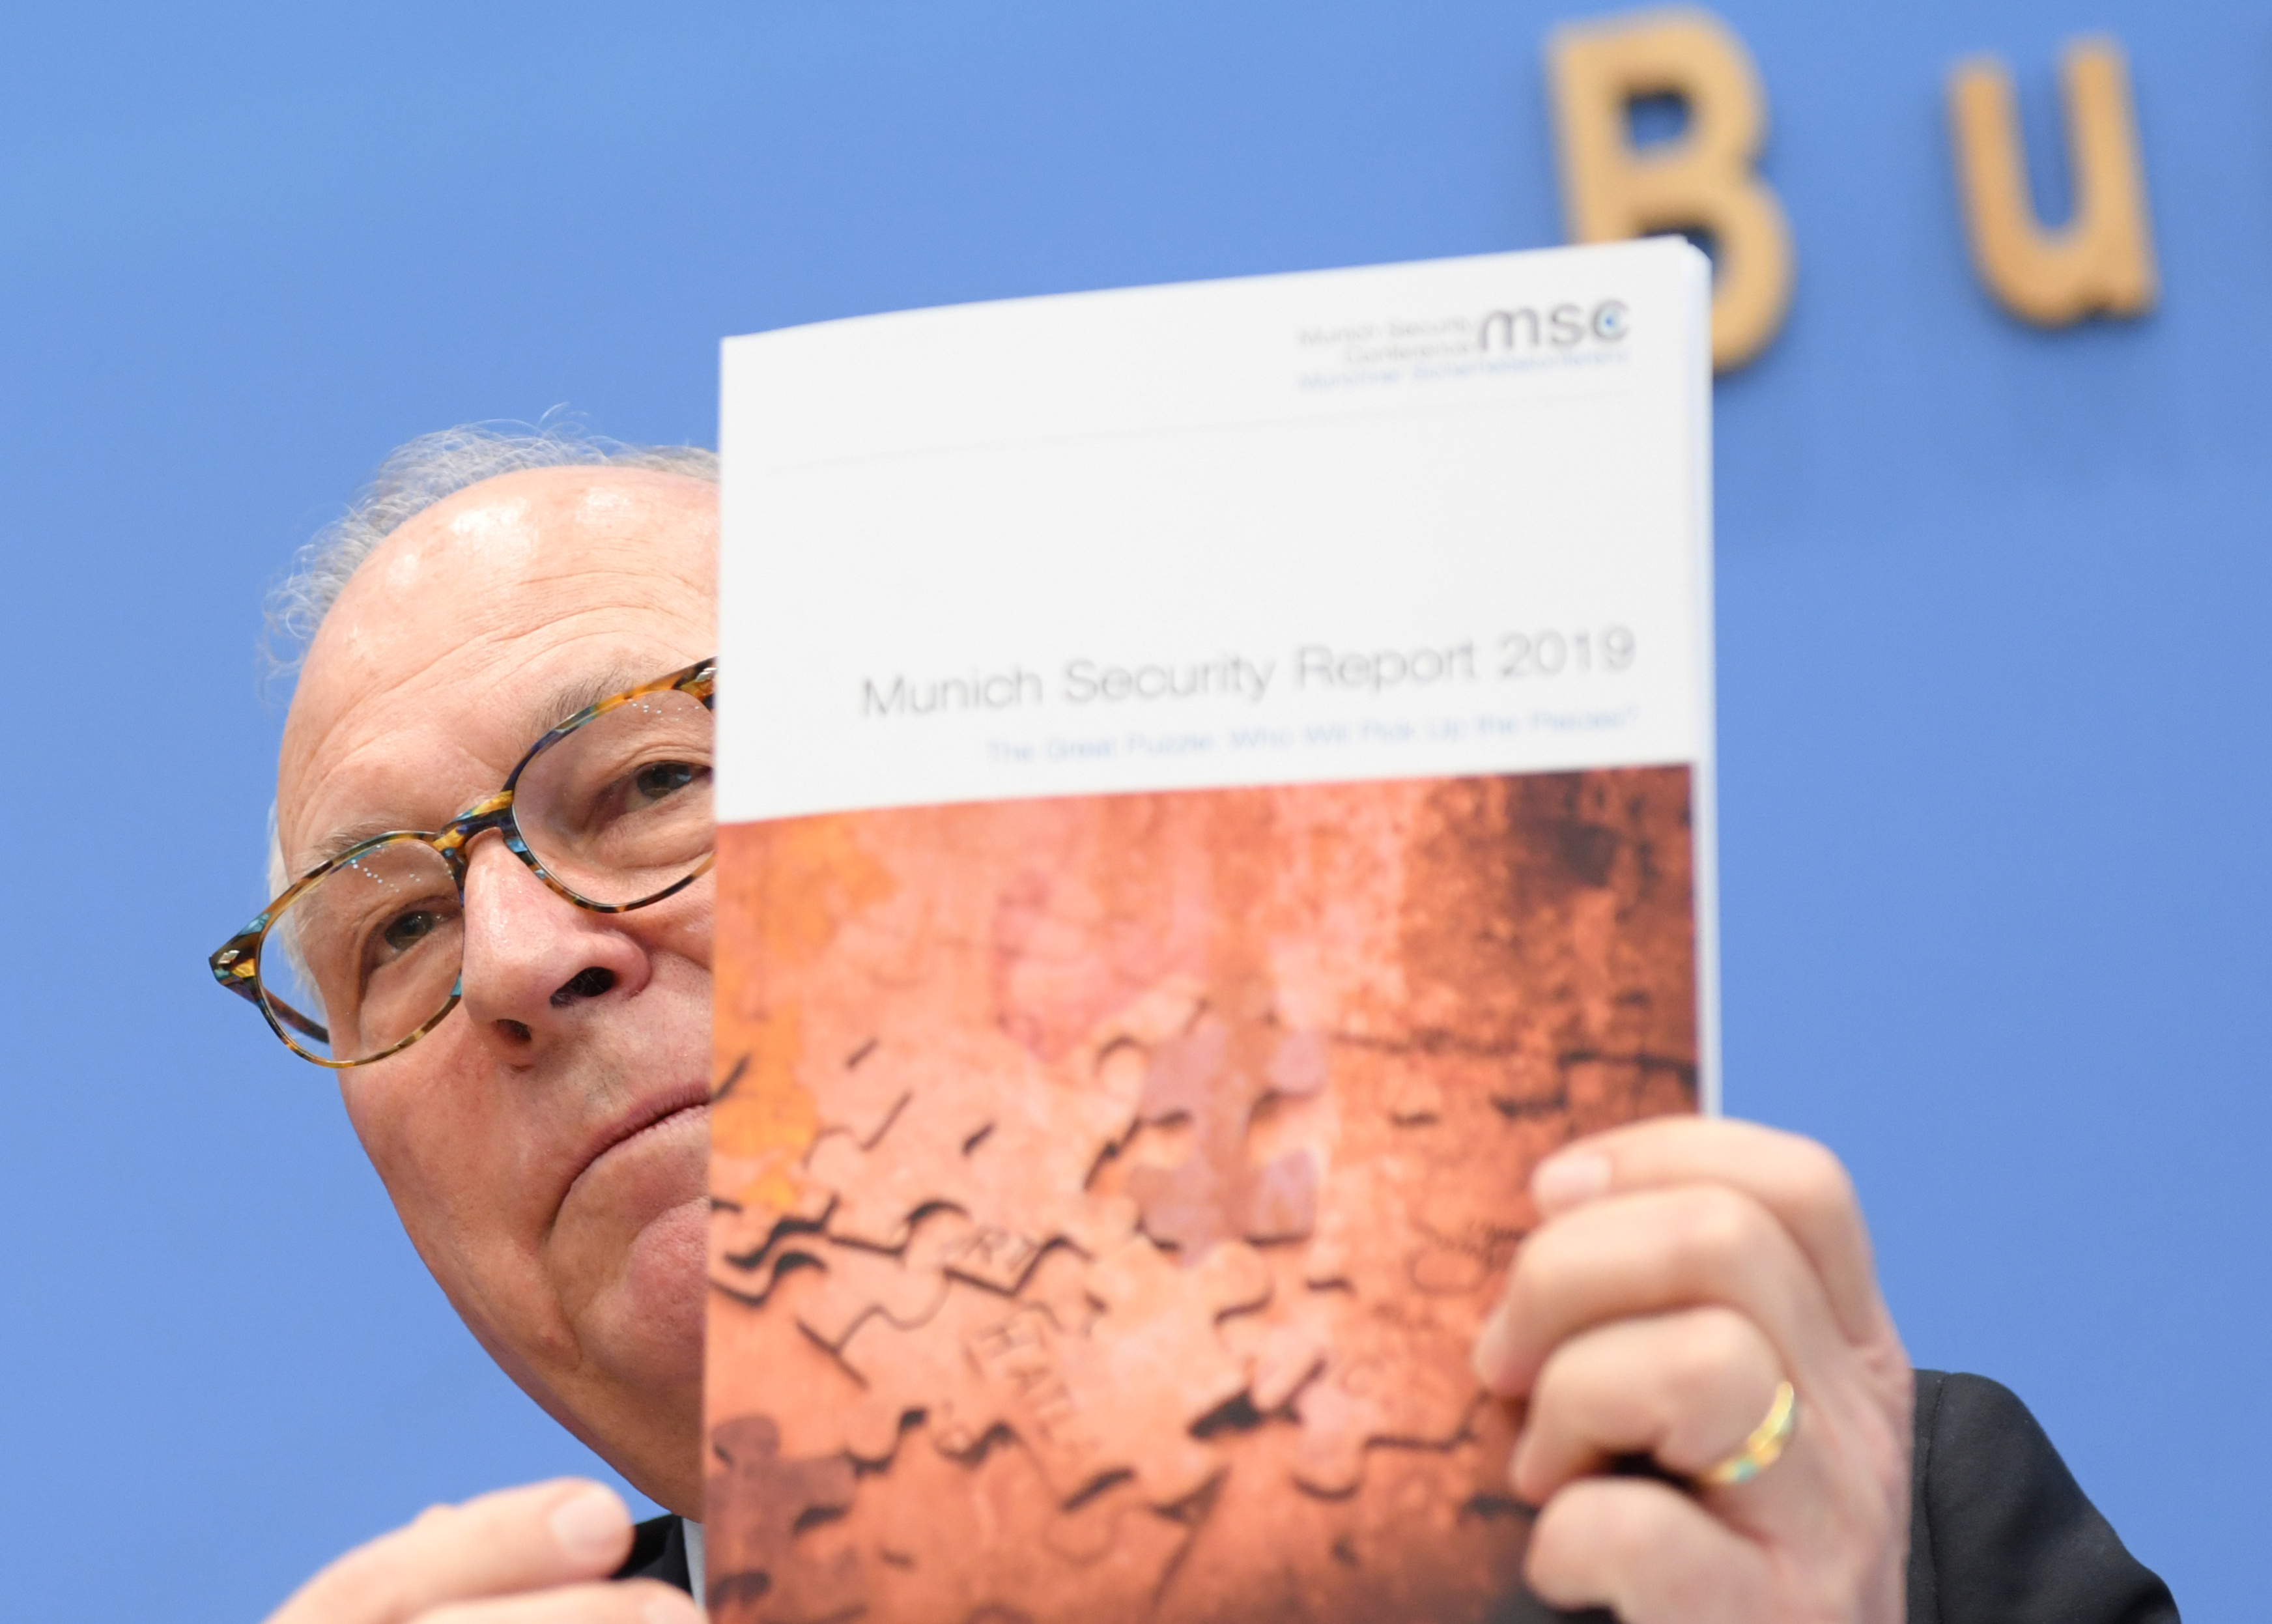 Munich Security Conference (MSC) chairman Wolfgang Ischinger presents the Munich Security Report for 2019 in Berlin, Germany, February 11, 2019. REUTERS/Annegret Hilse